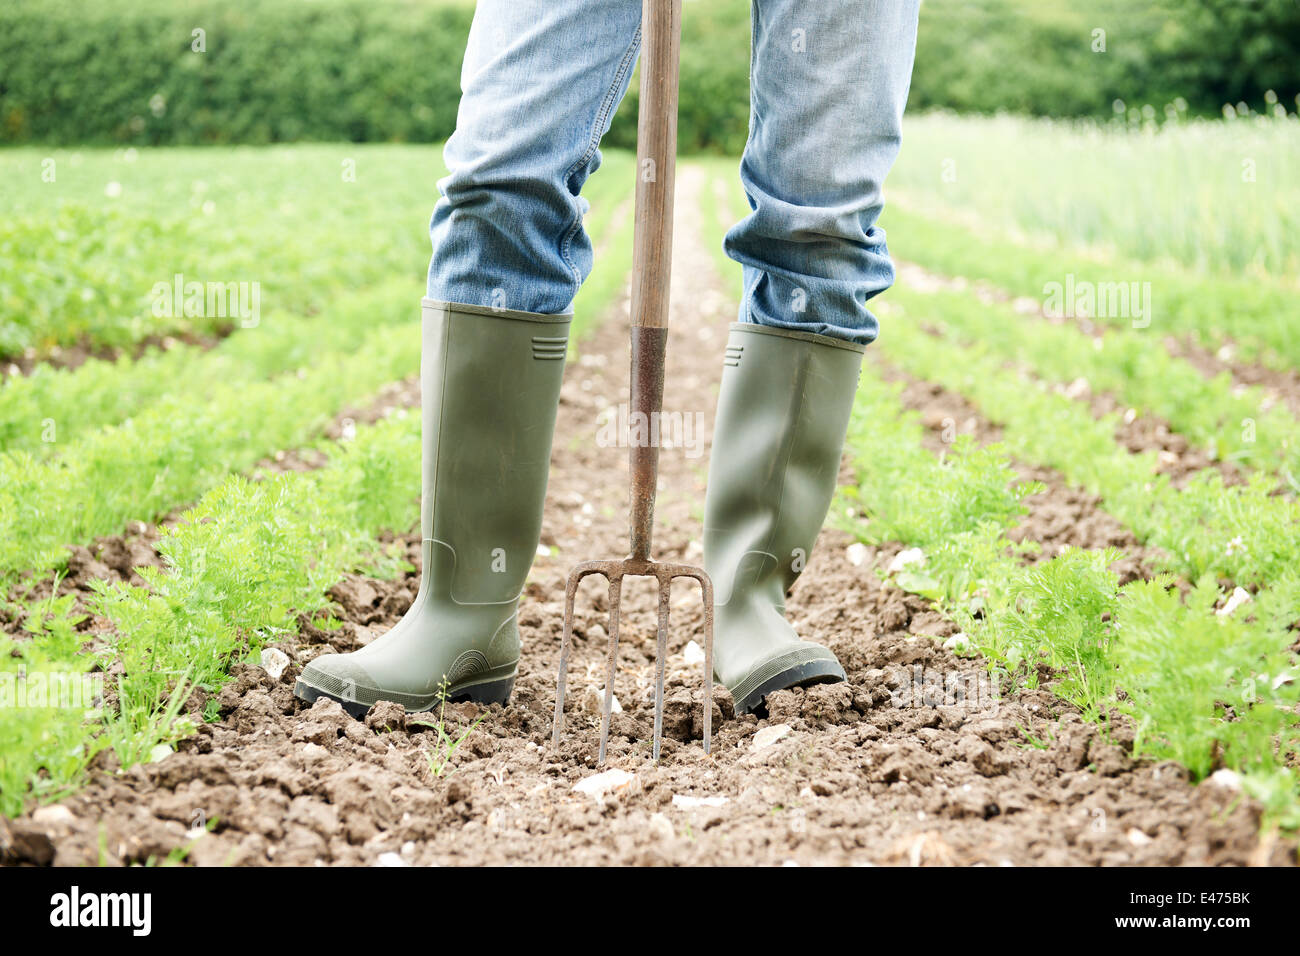 Close Up Of Farmer Working In Organic Farm Field - Stock Image